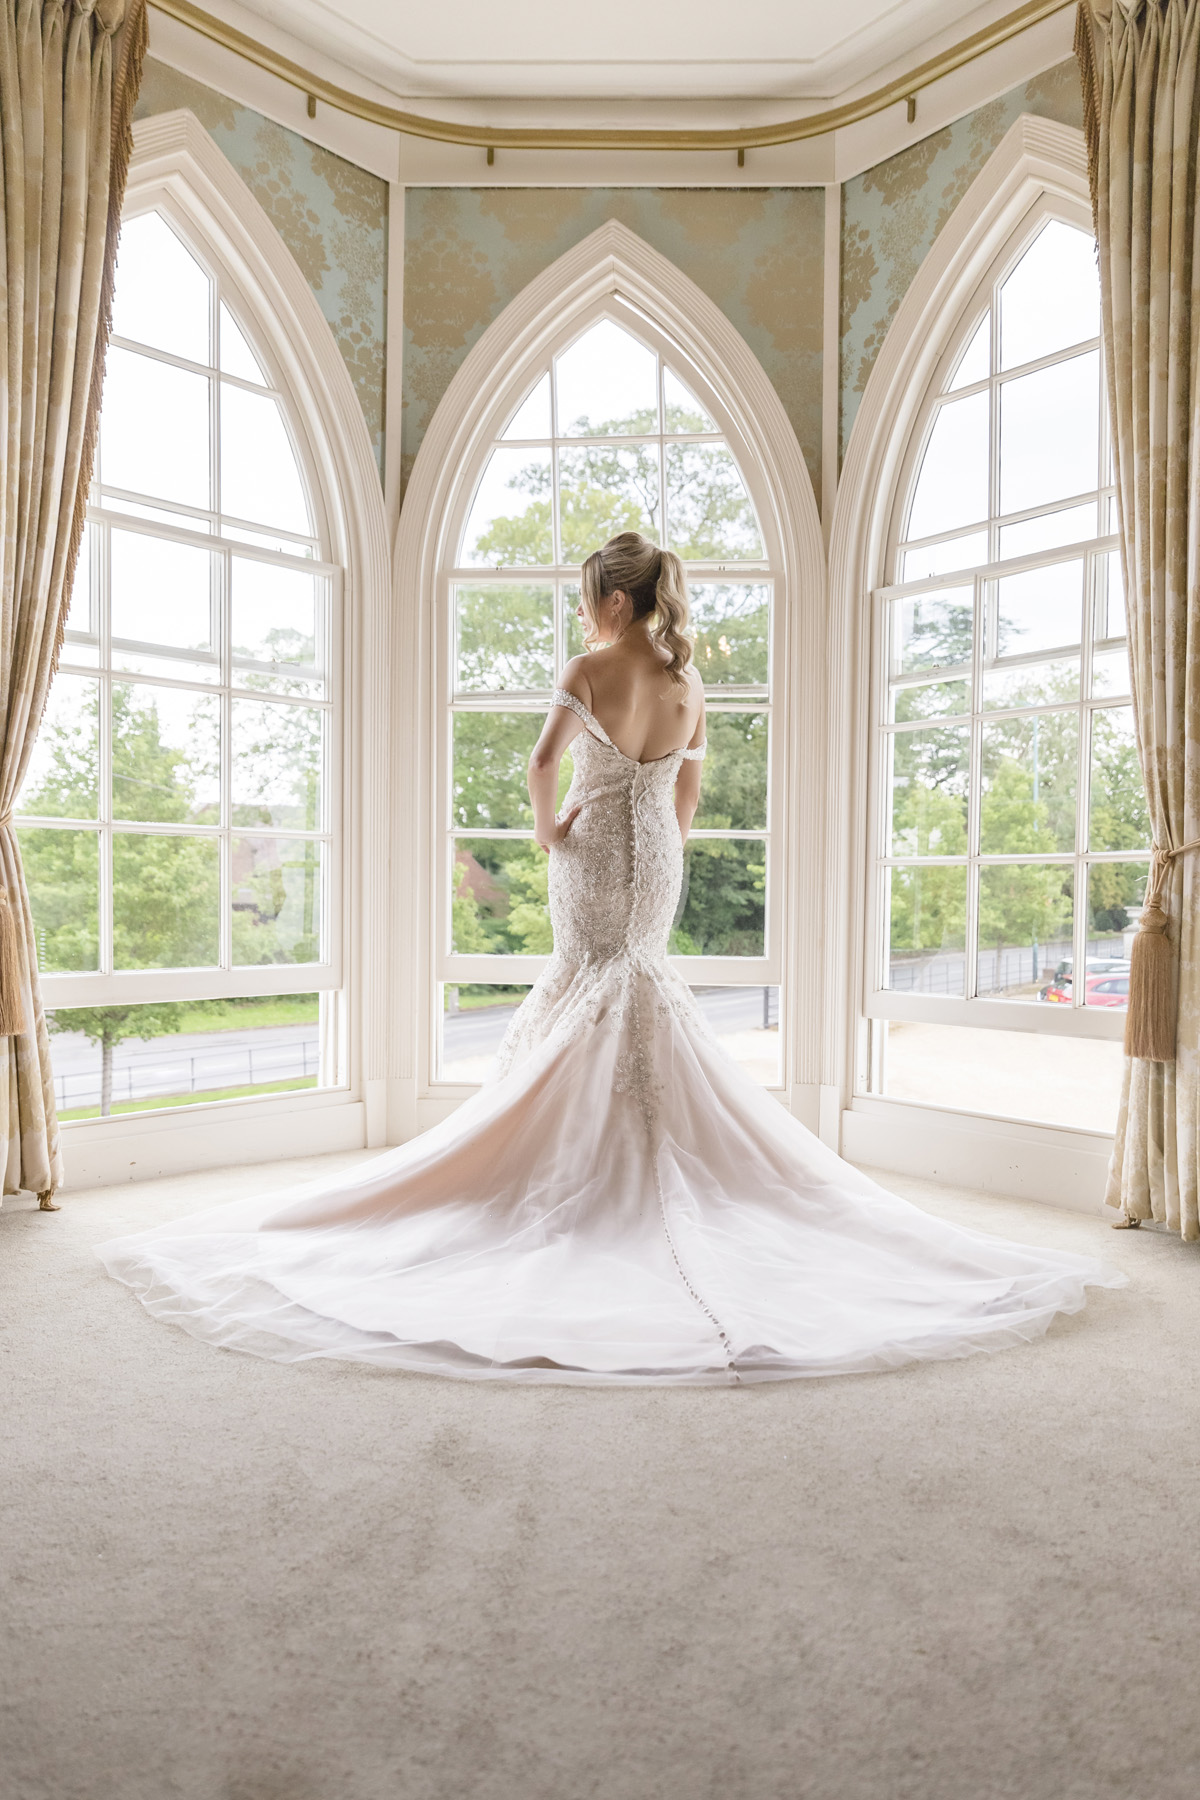 classic bridal portrait in front of arched windows at Warwick house